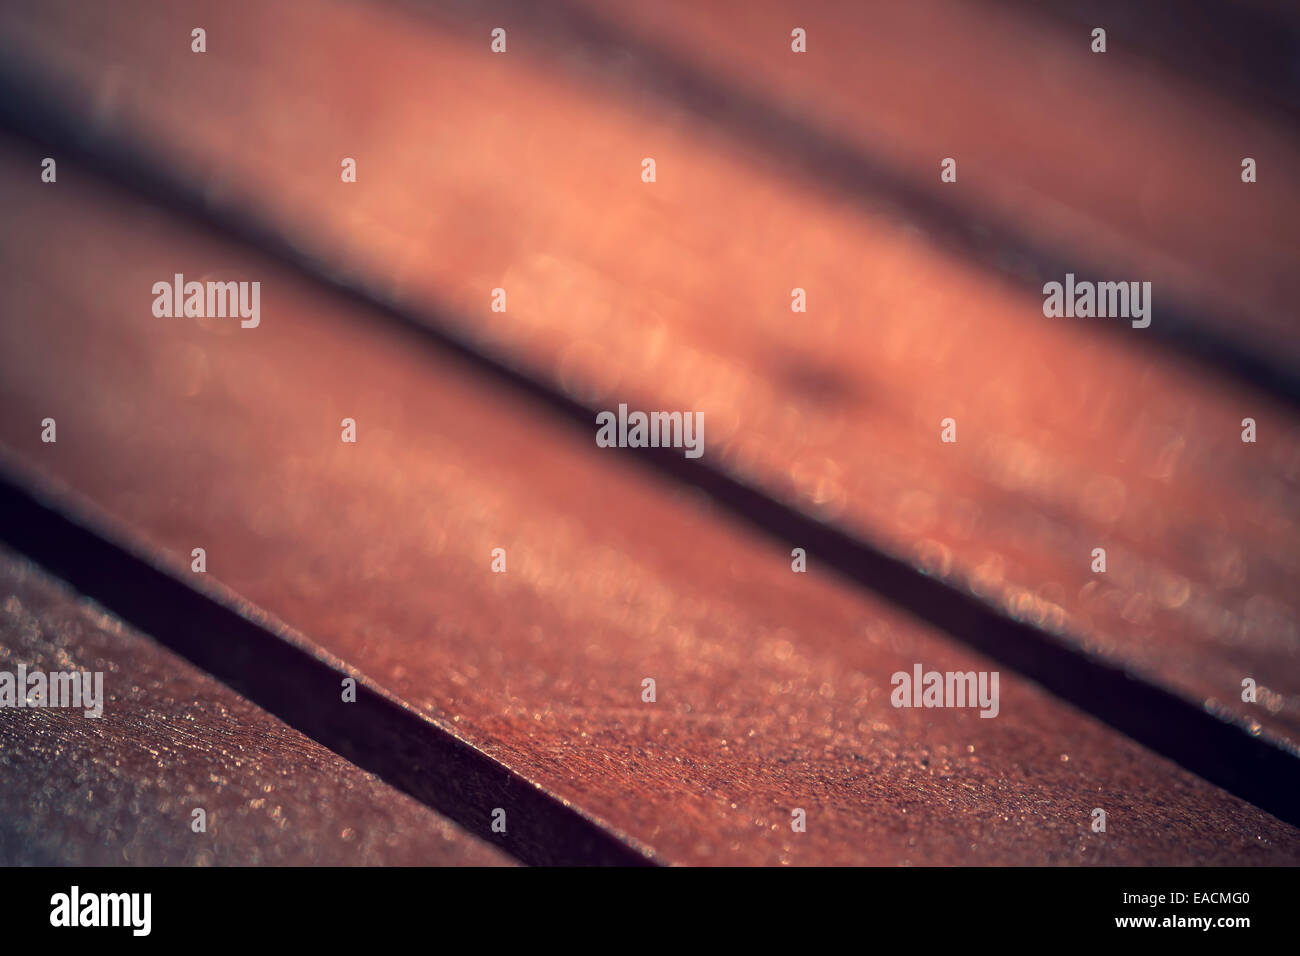 abstract background wood table - Stock Image